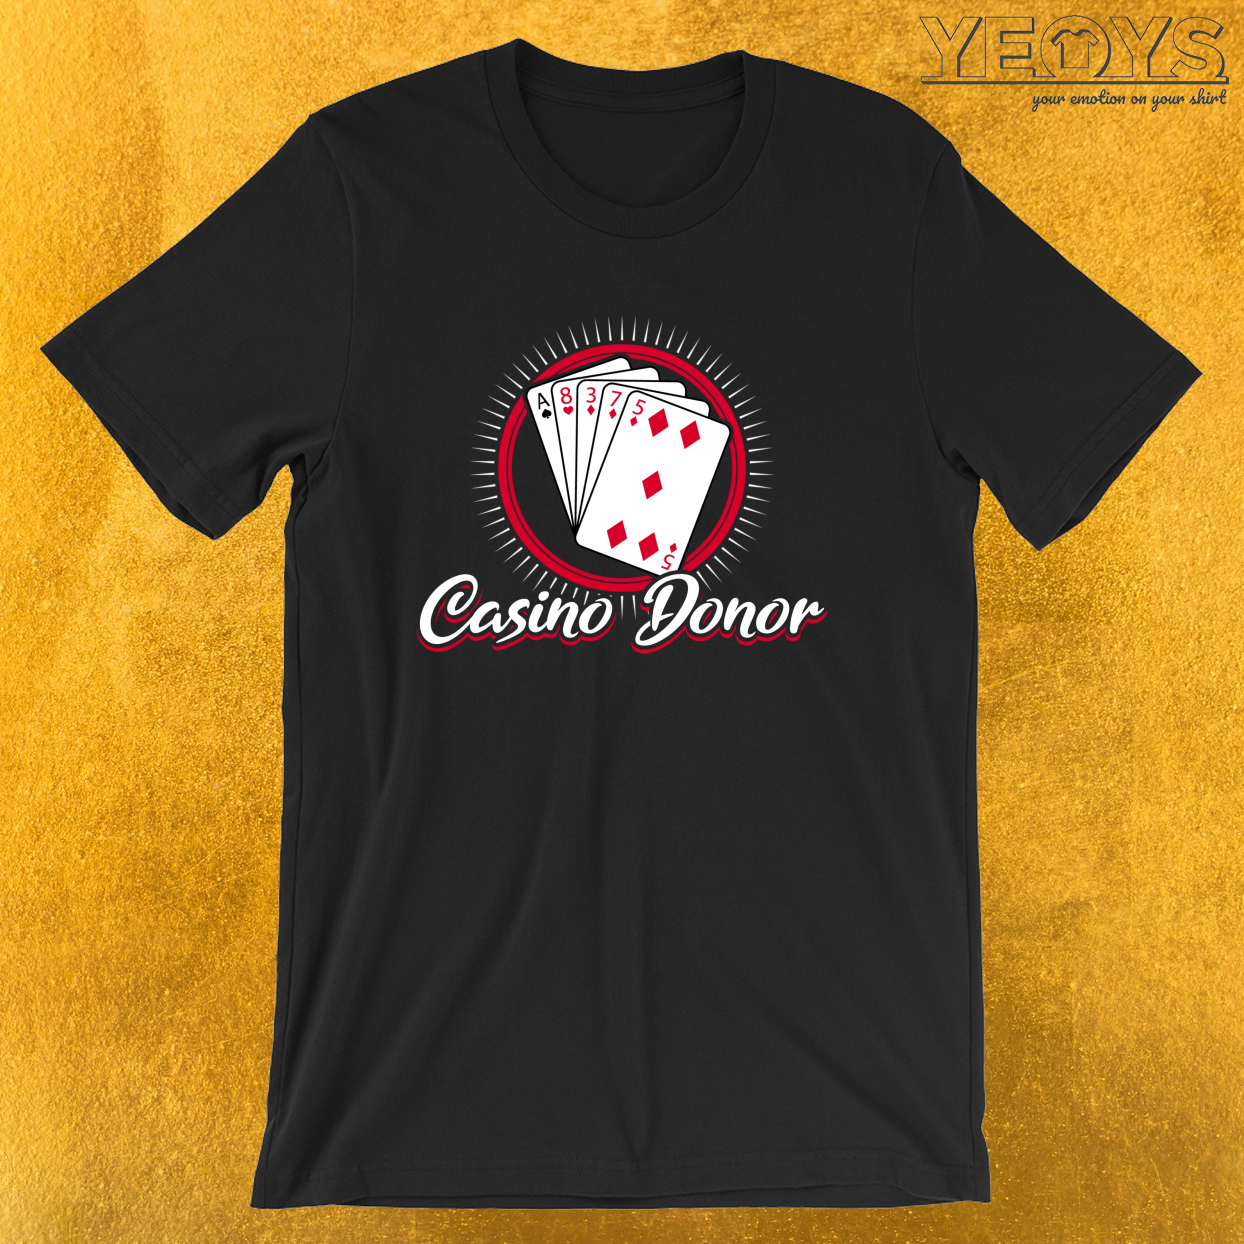 Casino Donor – Casino Tee